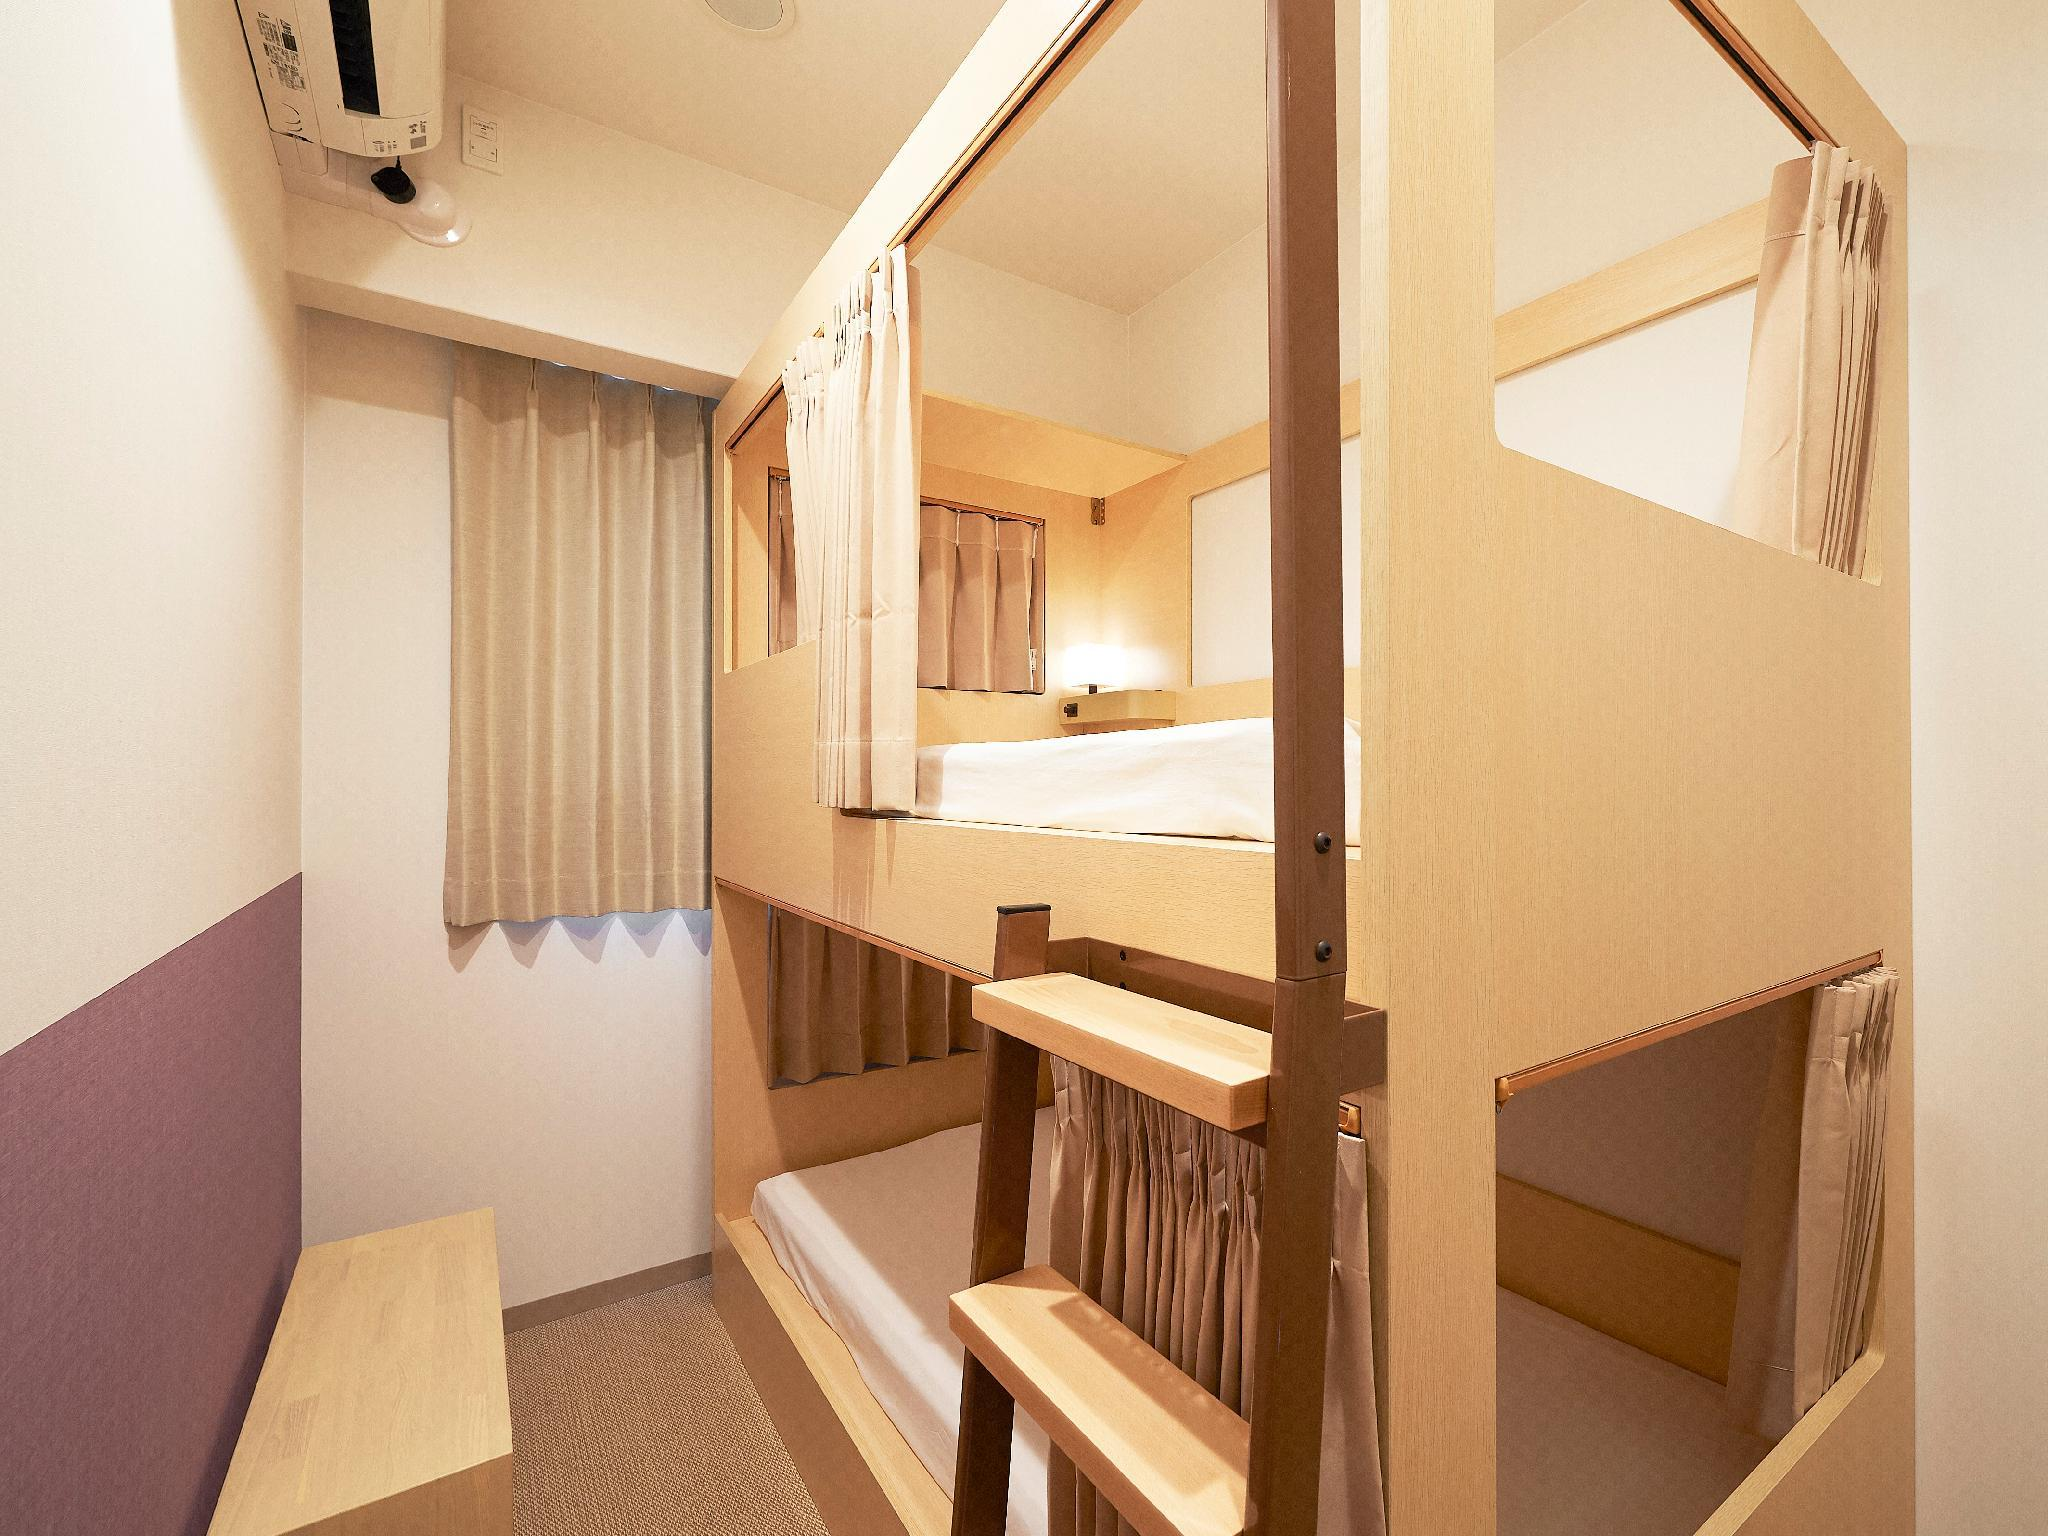 私人房(碌架床) - 禁煙 (Private Room with Bunk Bed - Non-Smoking)